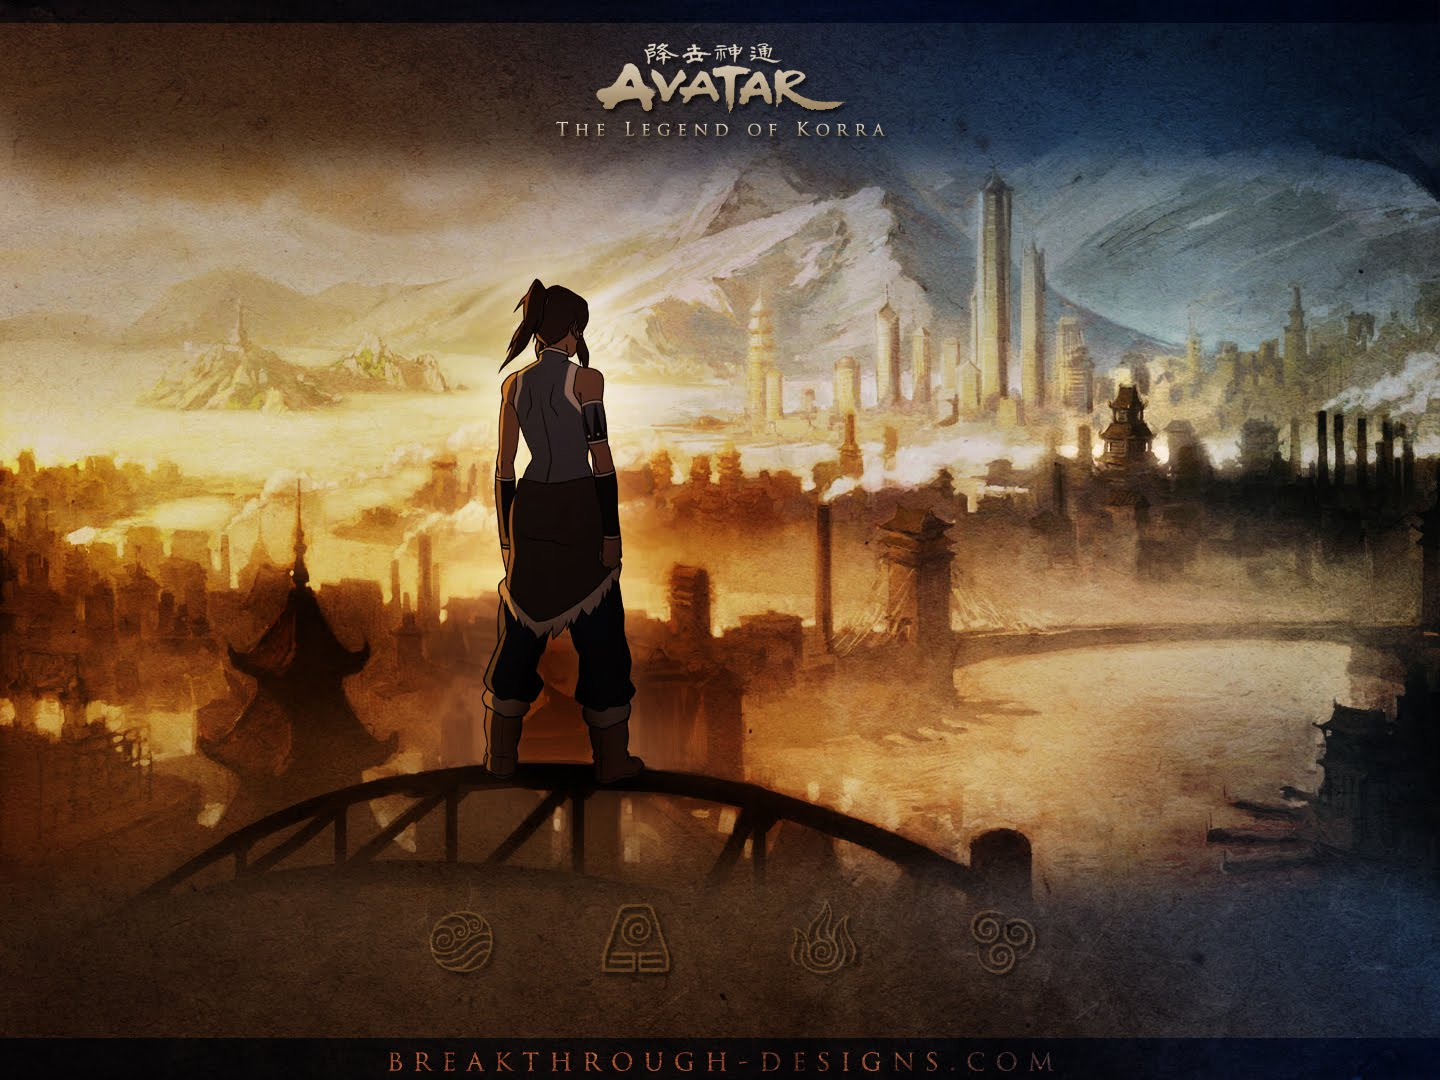 http://2.bp.blogspot.com/-YF_teaq0-2E/TceqLJqwK0I/AAAAAAAAAQA/e3PlMXcYNU8/s1600/Legend_of_Korra_Wallpaper_by_PonDeReplay.jpg